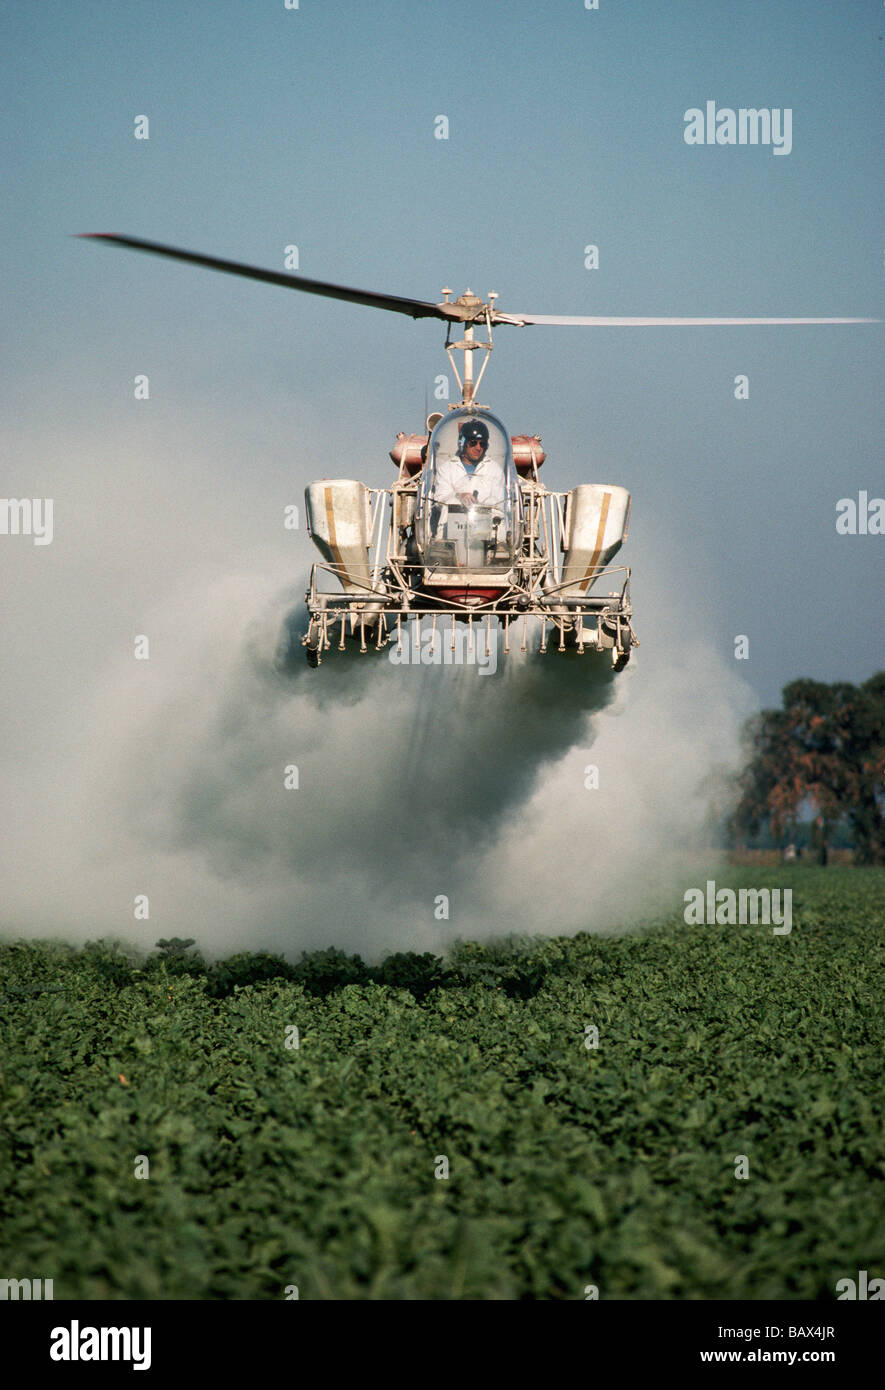 Helicopter dusting Sugar Beet field. - Stock Image